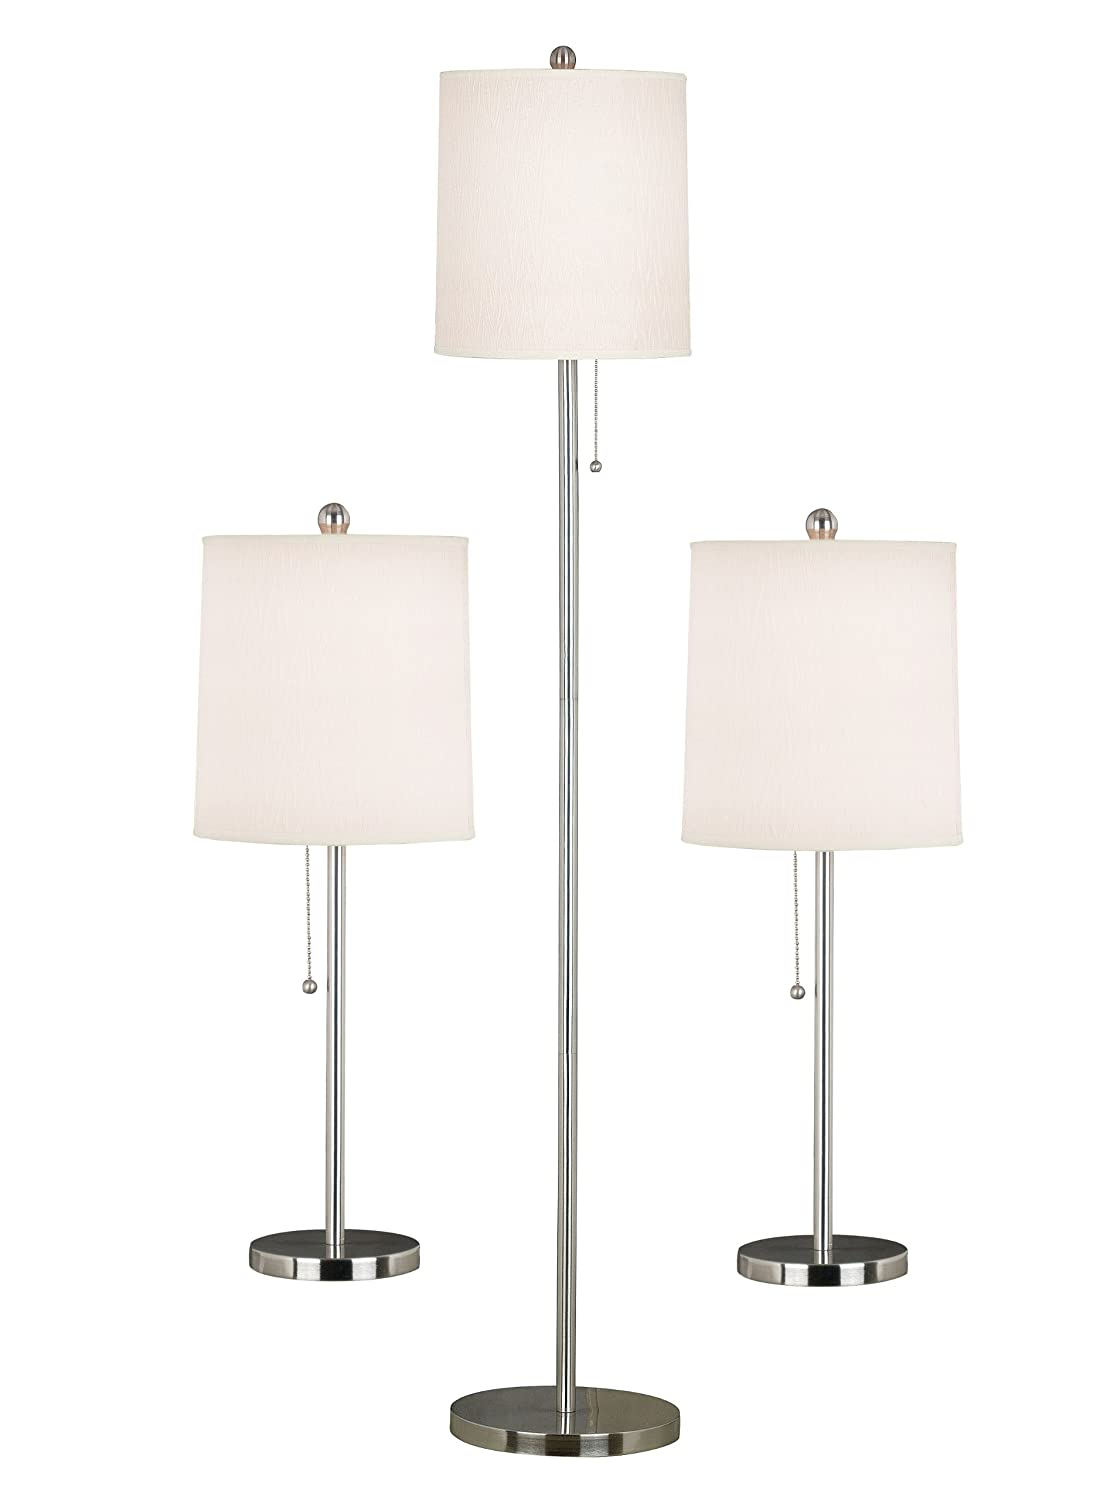 Amazon lamp shades tools home improvement - Kenroy Home 21016bs Selma Table And Floor Lamp 3 Pack Brushed Steel Household Lamp Sets Amazon Com